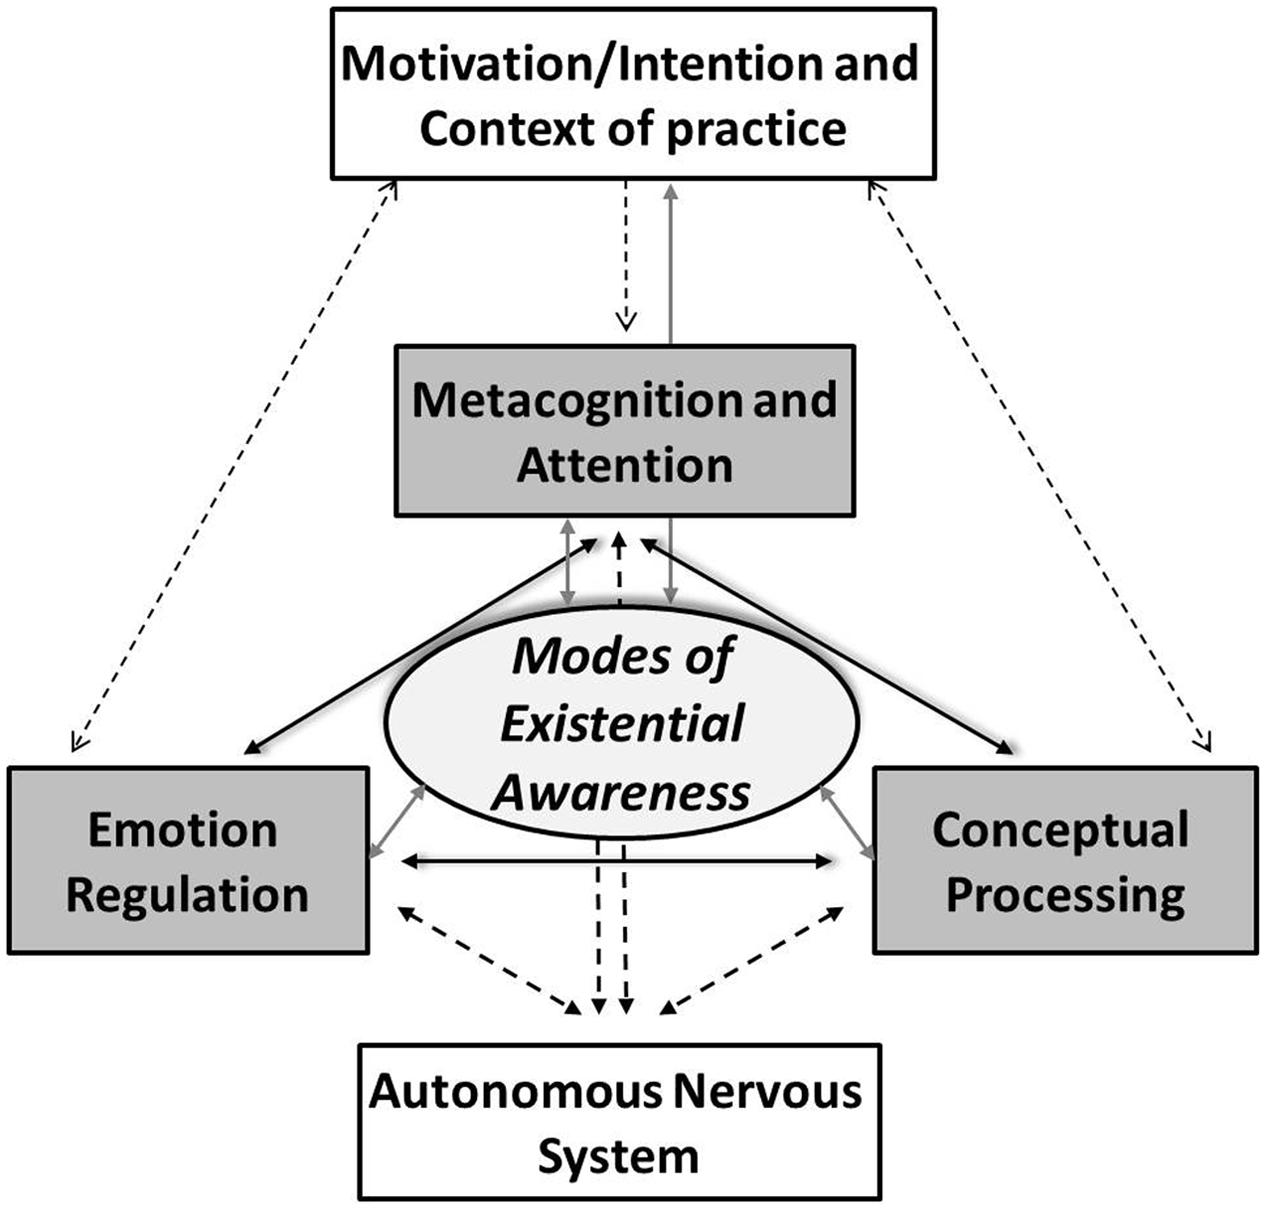 frontiers defining contemplative science the metacognitive self frontiersin org